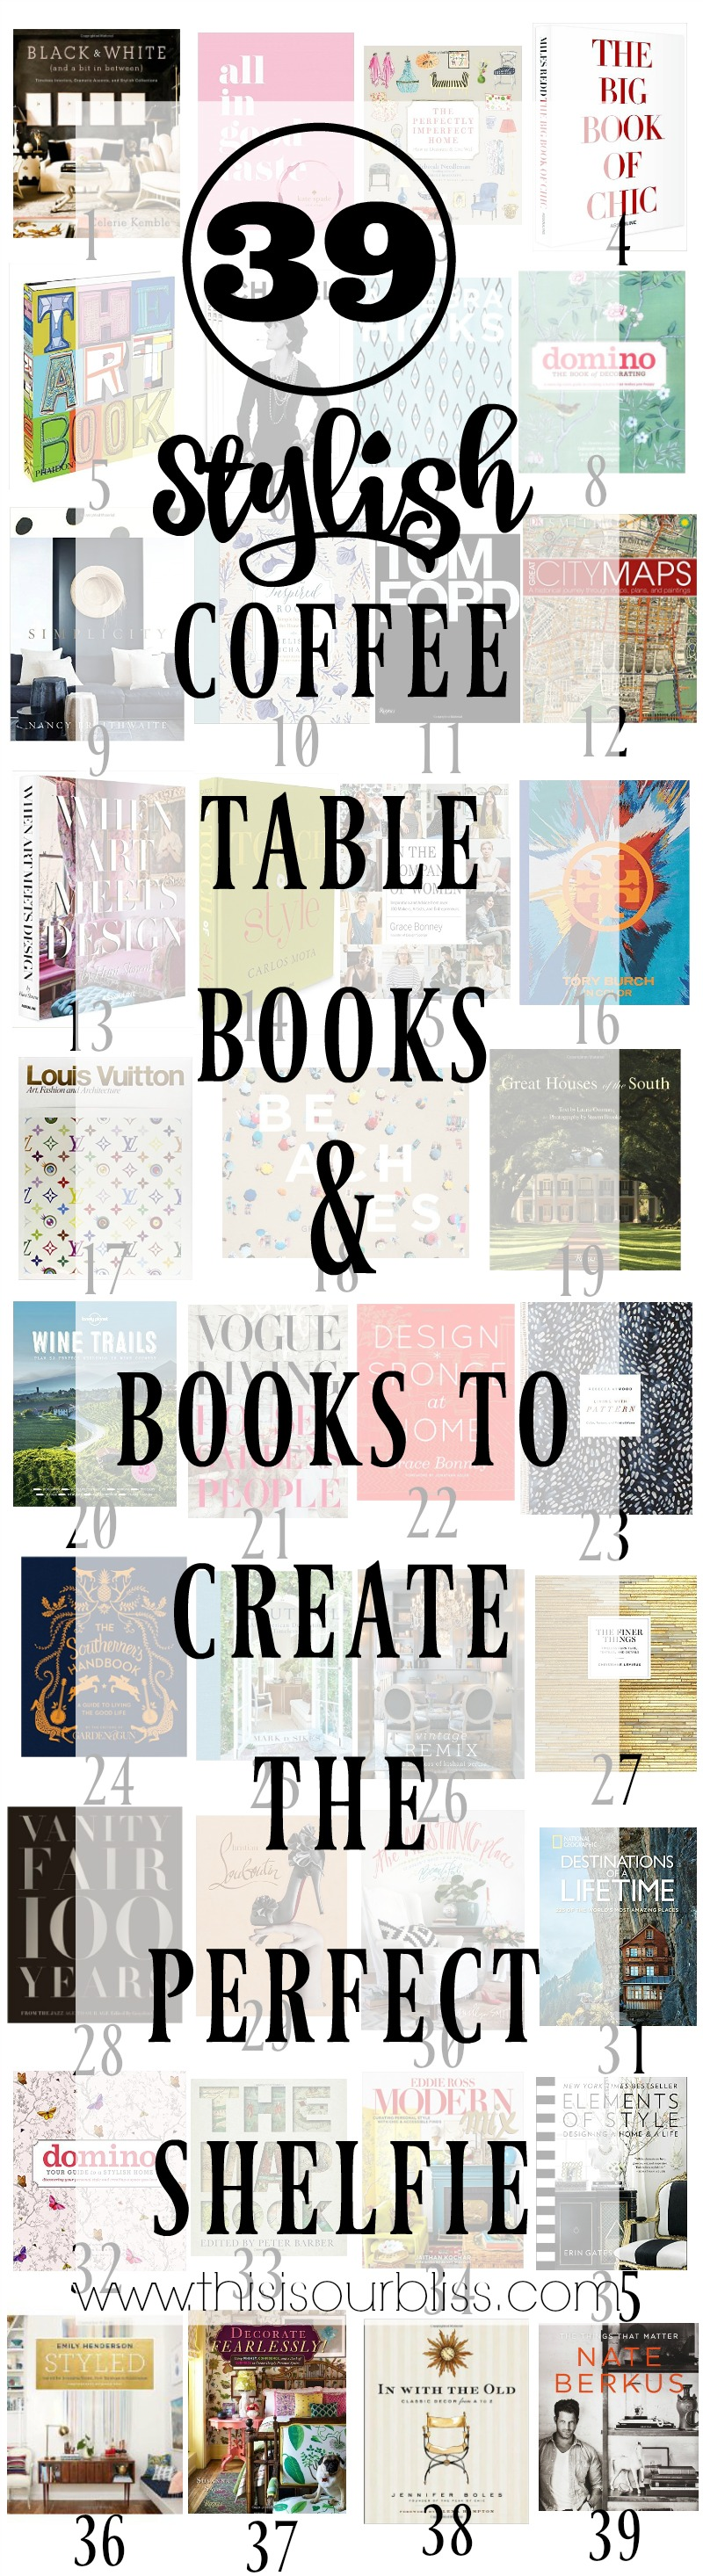 The Ultimate Coffee Table Book Gift Guide | Stylish coffee table books for your holiday gift wishlist | This is our Bliss | www.thisisourbliss.com